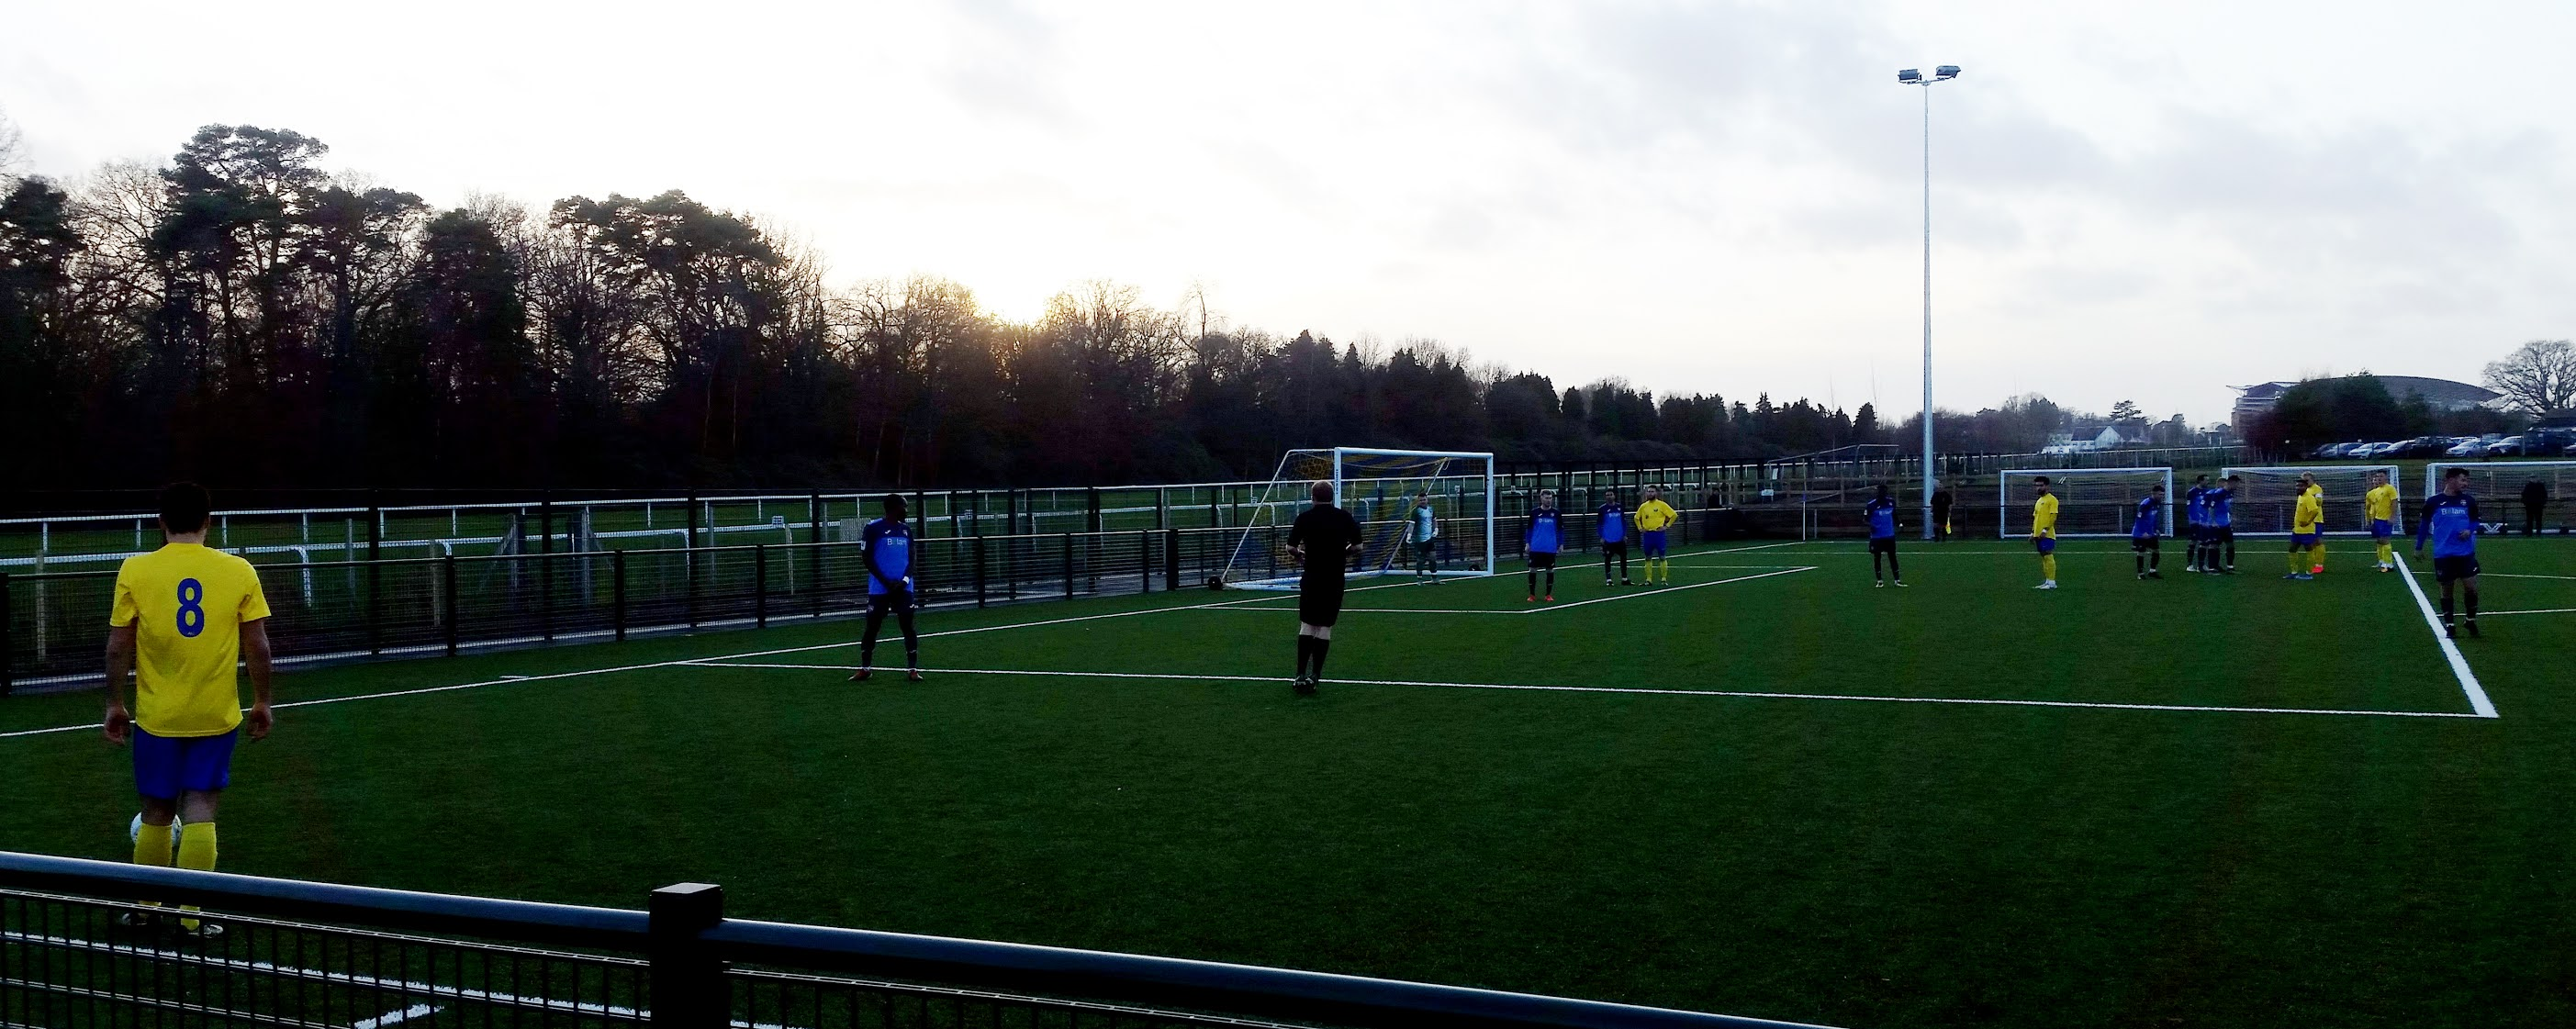 Overlooking the Ascot Racecourse during an Ascot United game